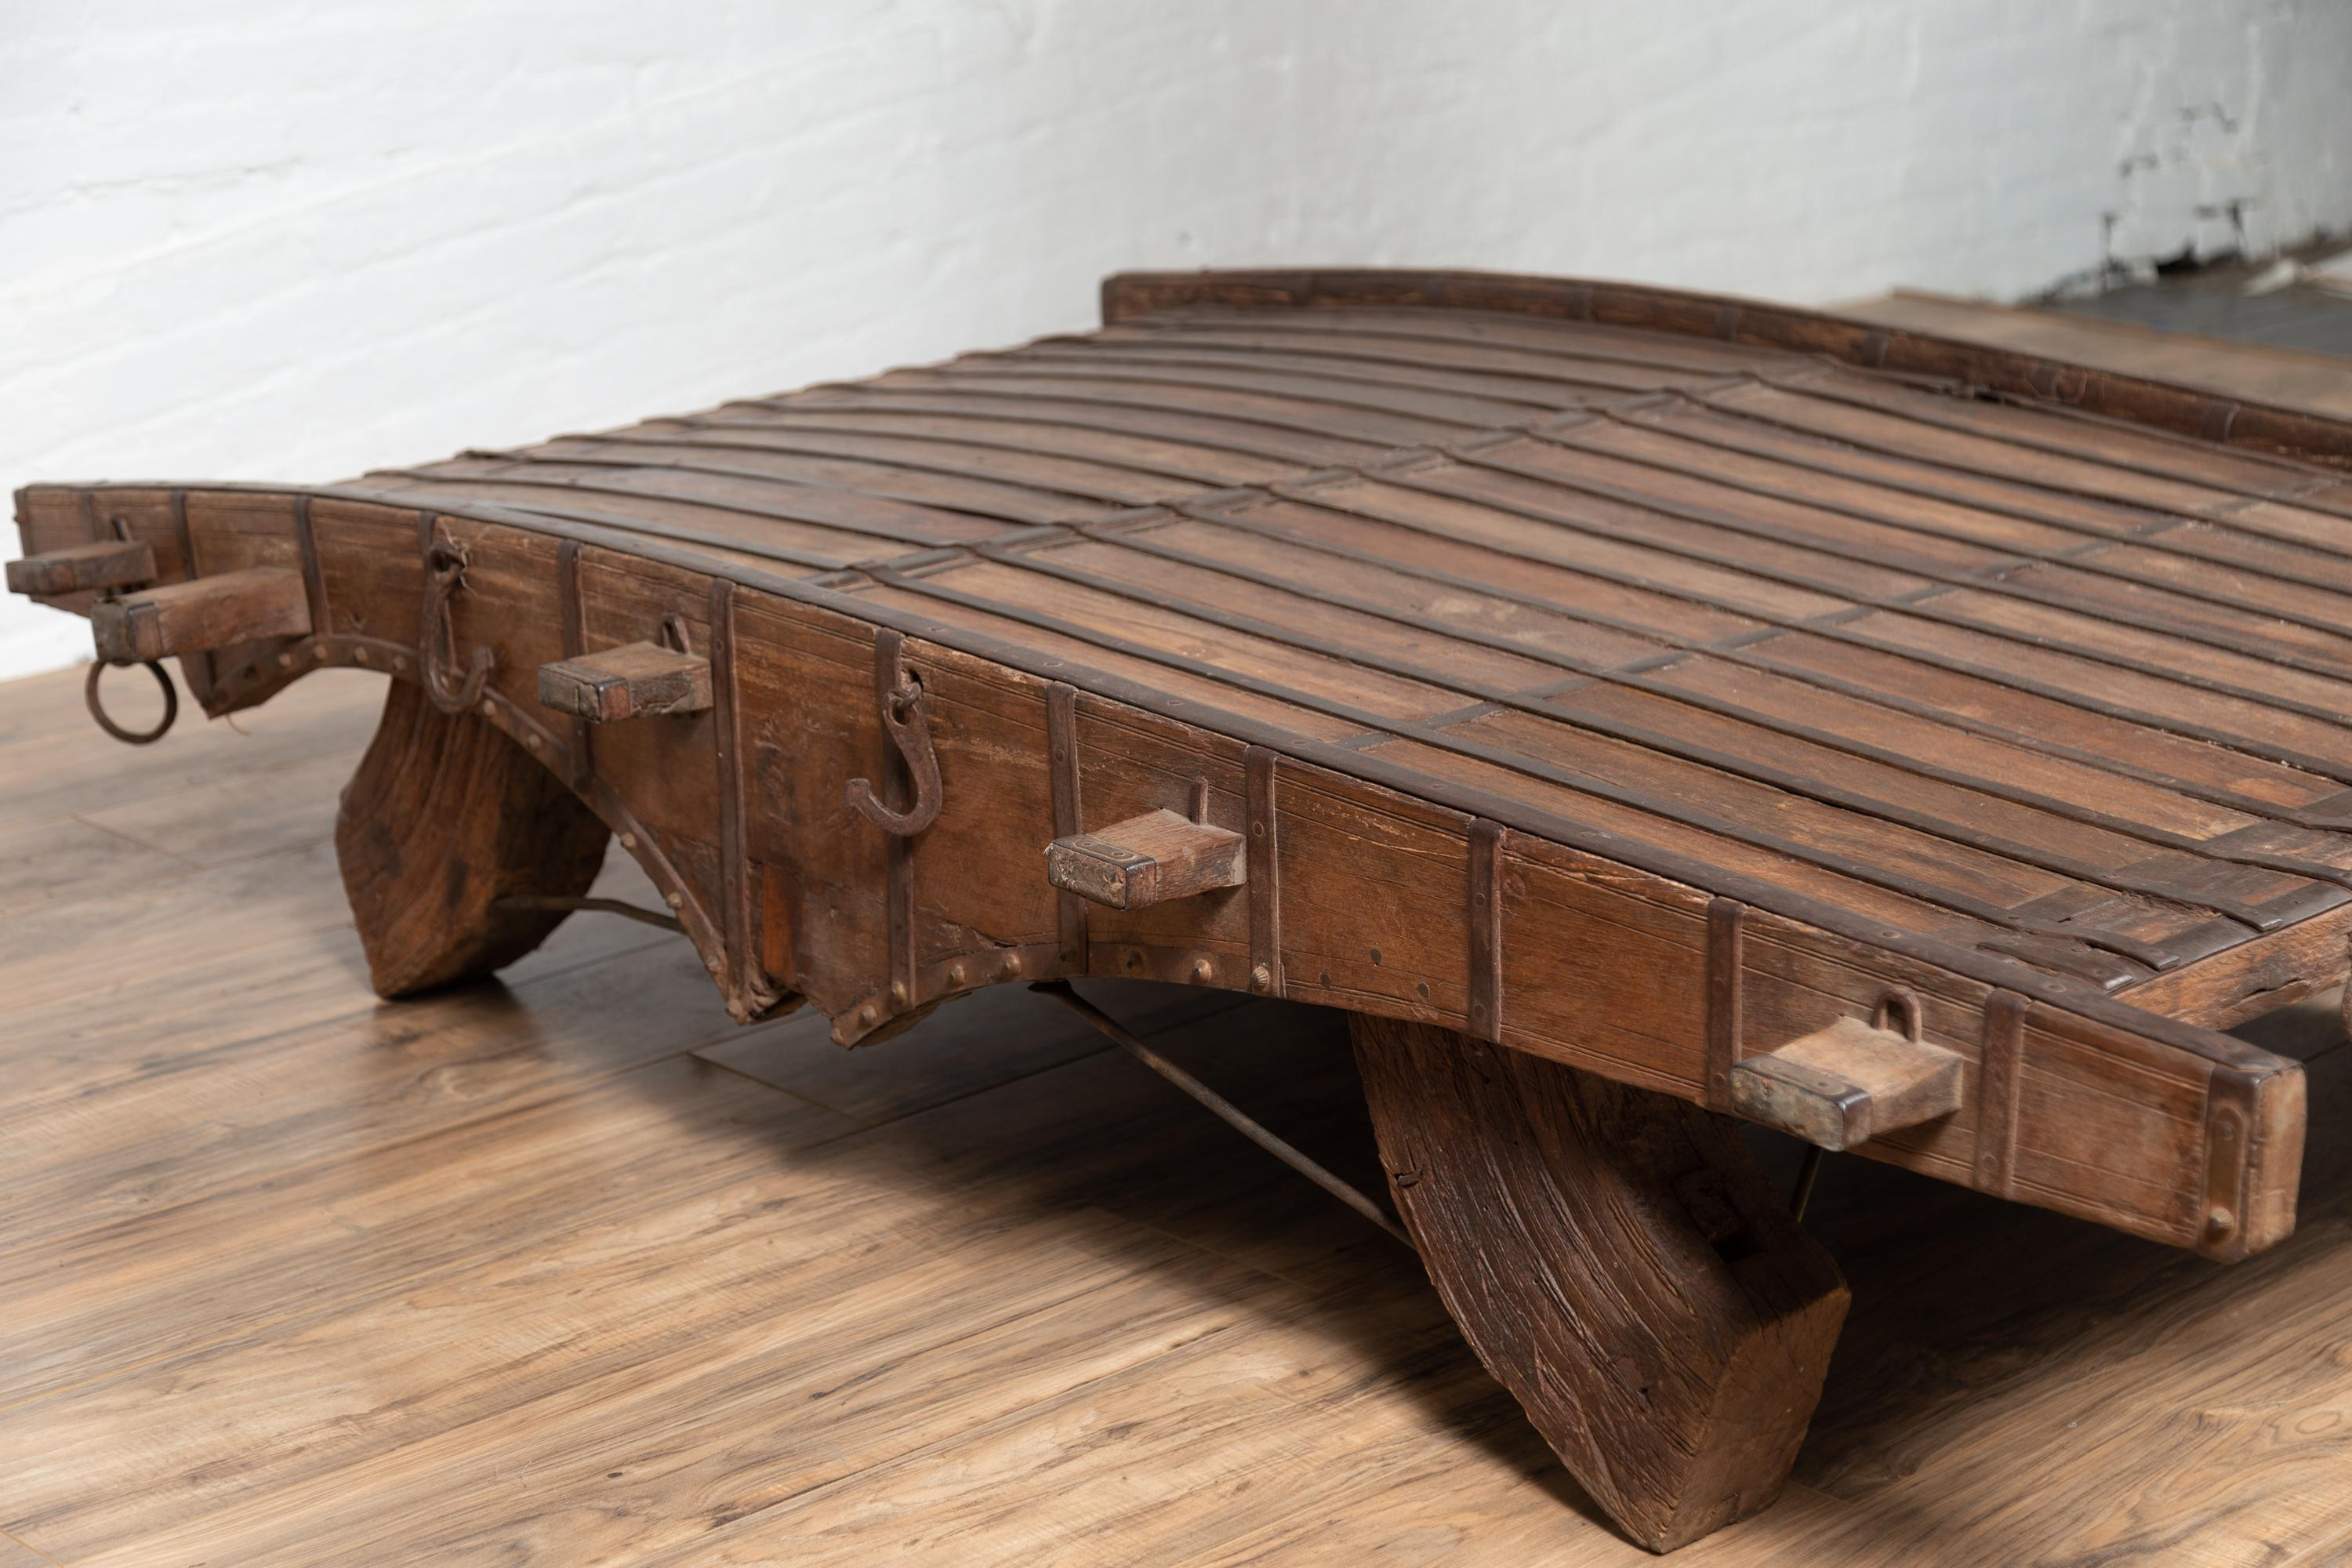 Indian Rustic Antique Wooden Ox Cart With Metal Accents Made Into A Coffee  Table